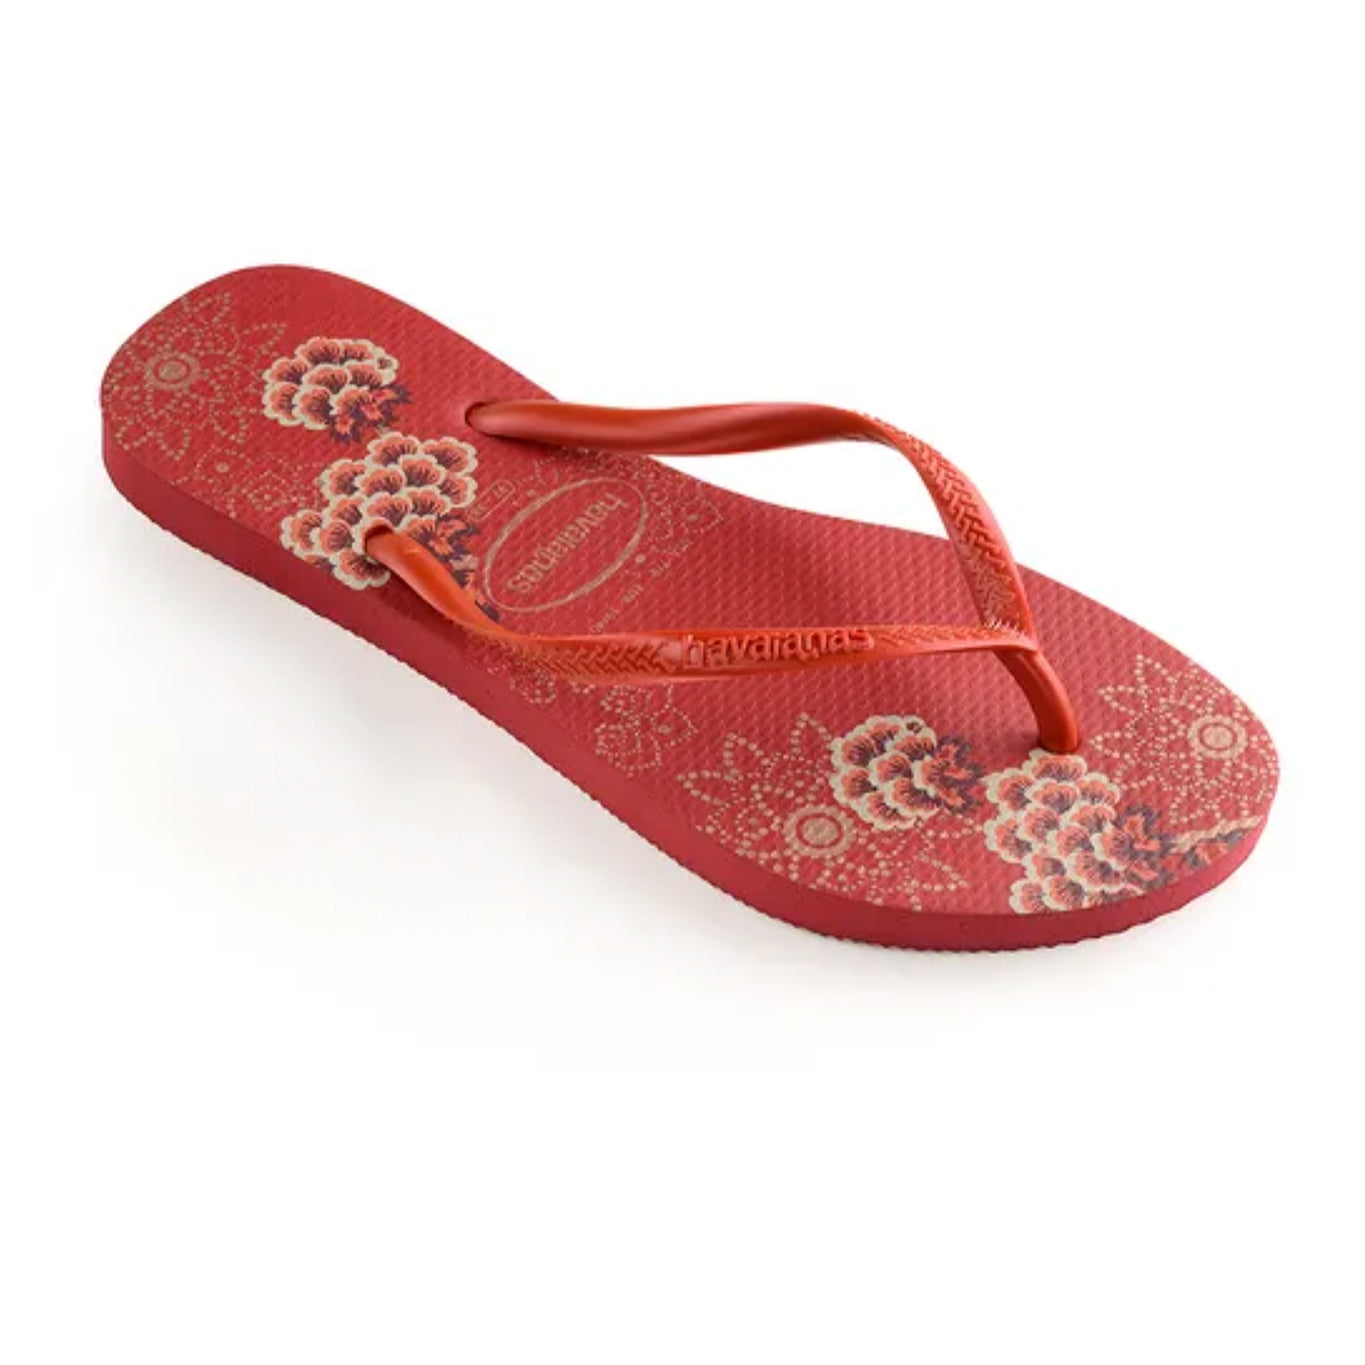 Havaianas flip flop - Ladies Slim organic - red